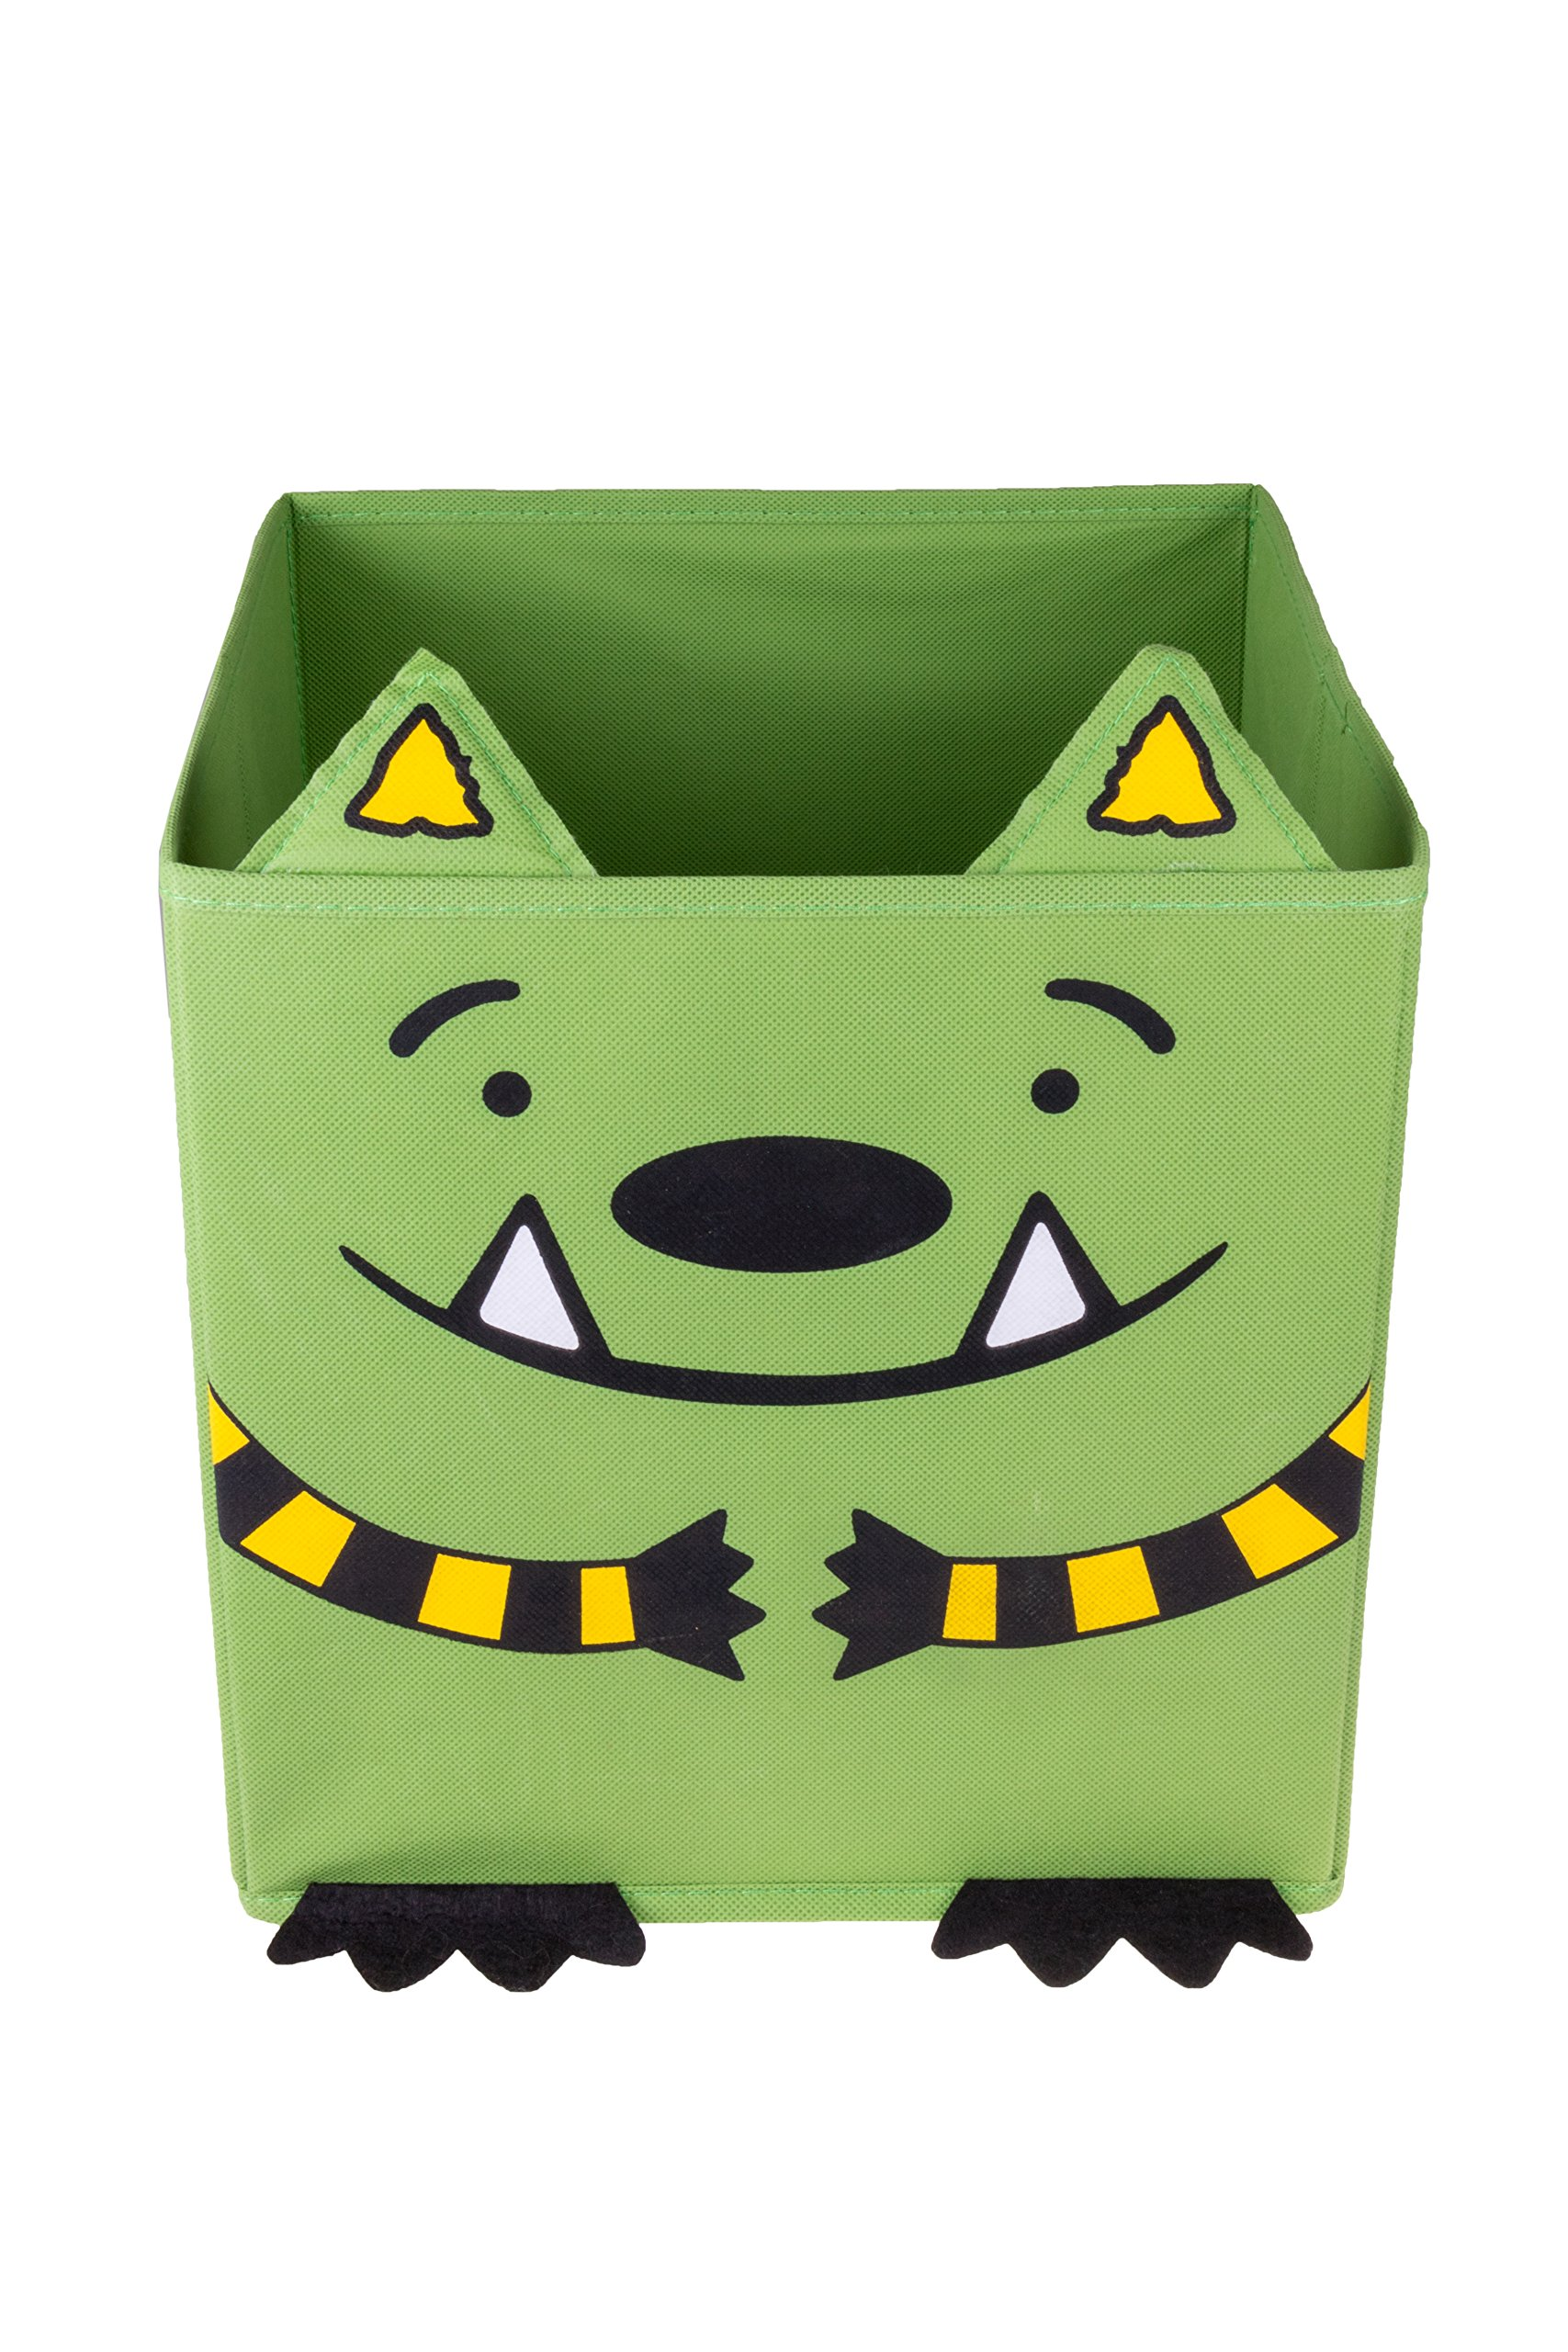 Jonathan James and the Whatif Monster Collapsible Storage Organizer by Clever Creations | Officially Licensed | Cube Folding Storage Organizer | Perfect Size Storage Cube for Books, Games, and More!